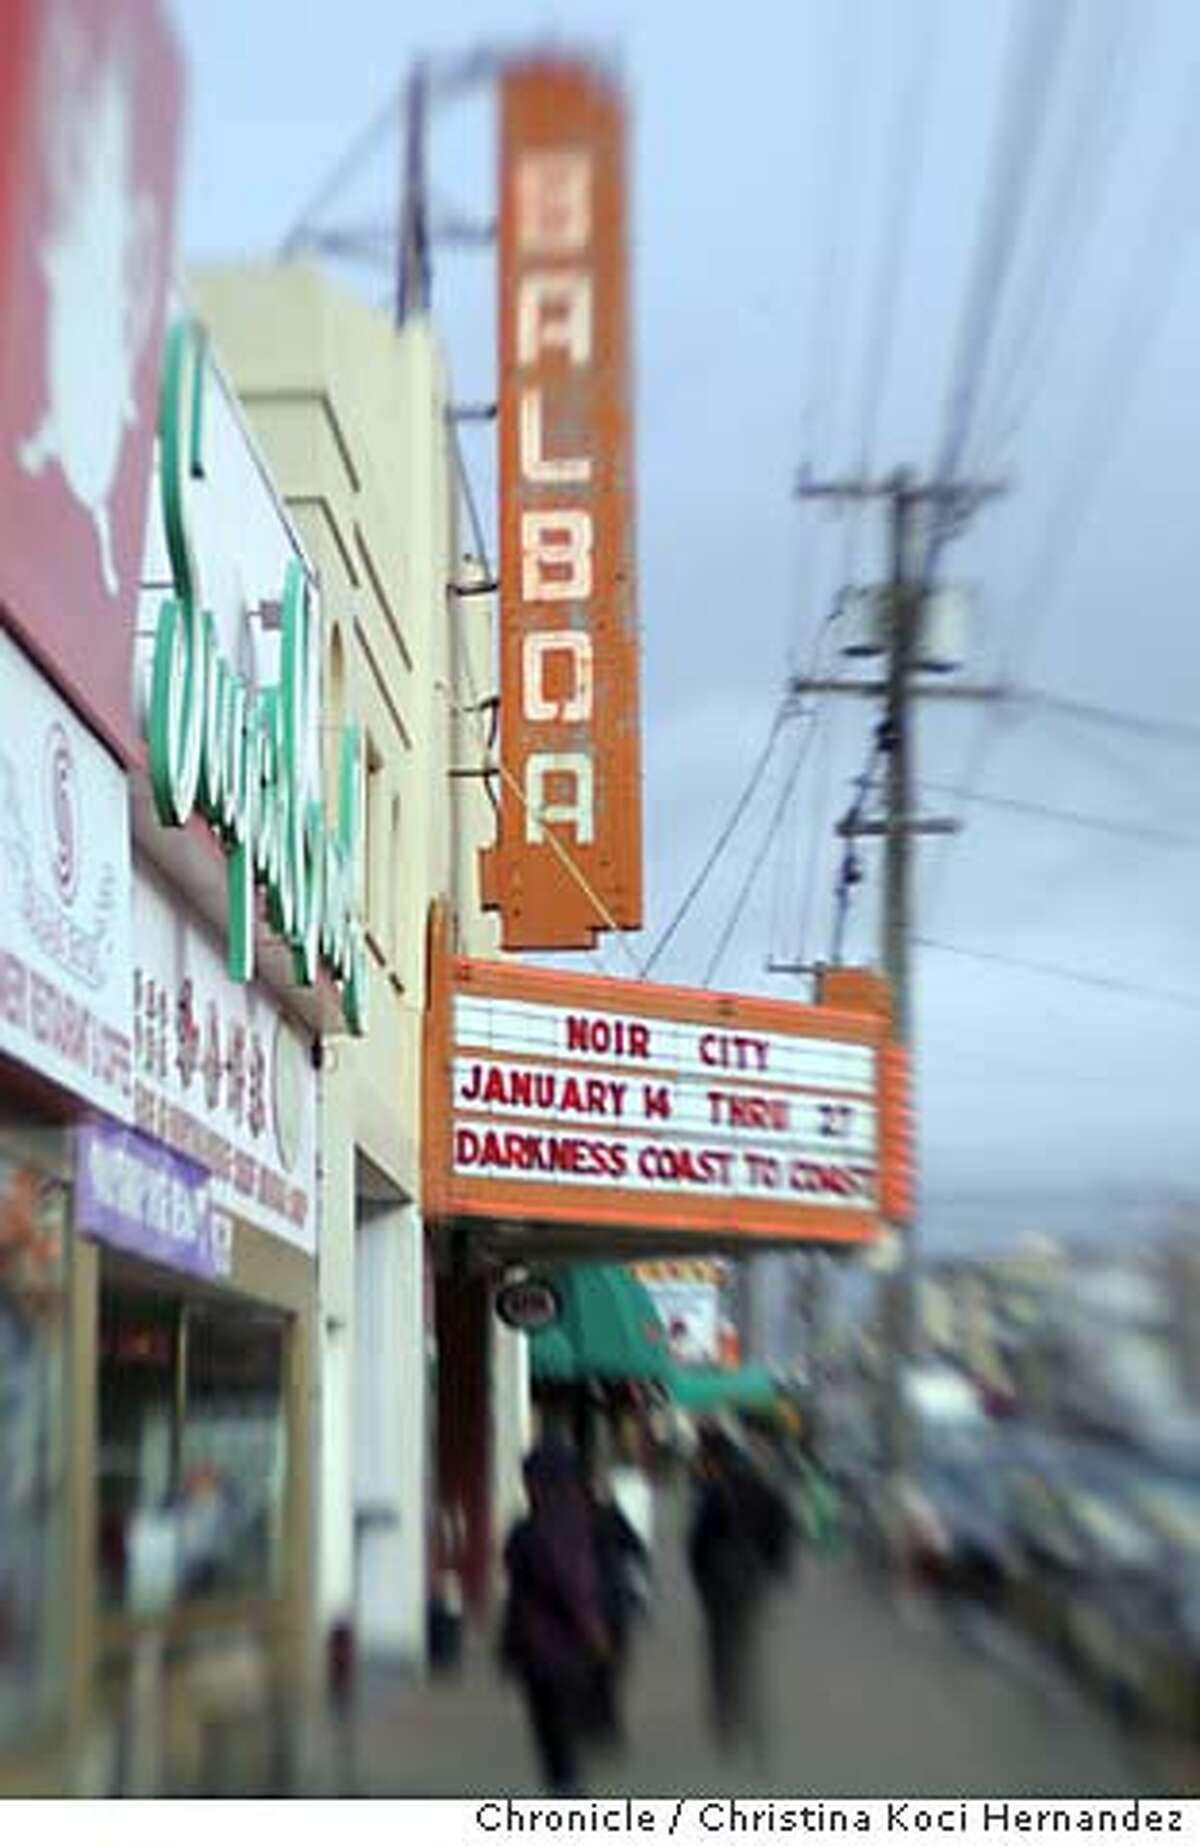 balboa040_ckh.jpg We need a really nice picture to go with a datebook centerpiece on the Balboa Theater in San Francisco. .CHRISTINA KOCI HERNANDEZ/CHRONICLE